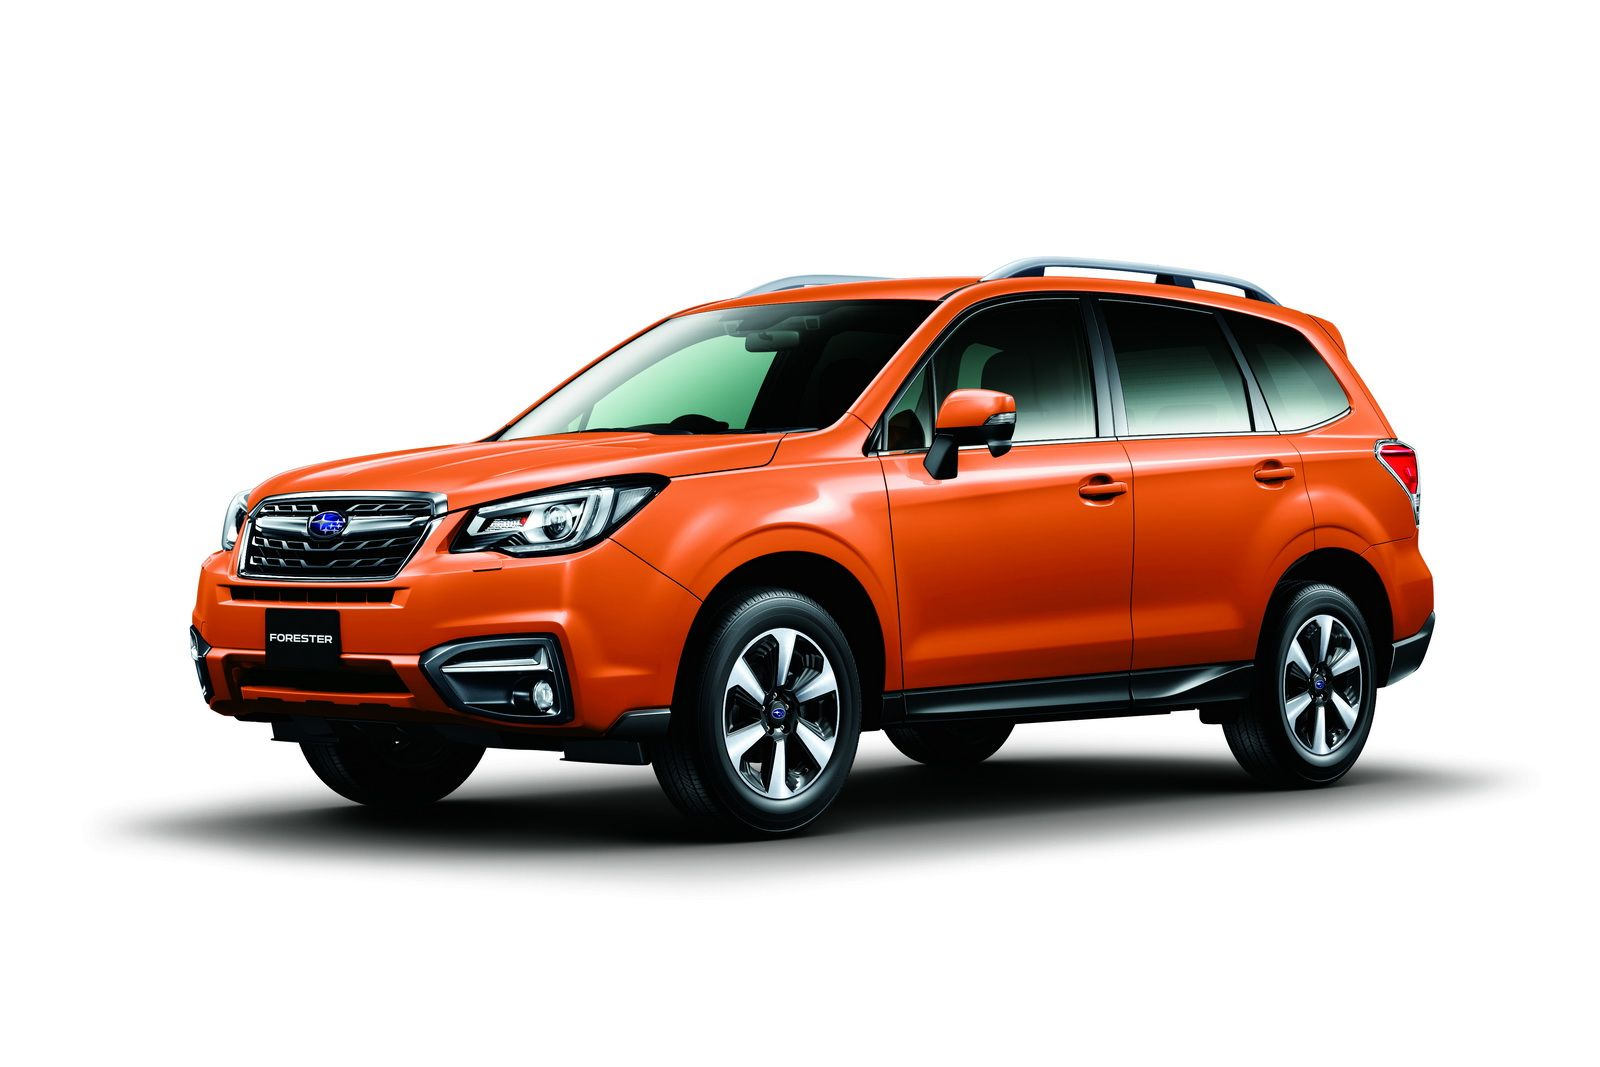 Subaru shows off the facelifted 2017 forester